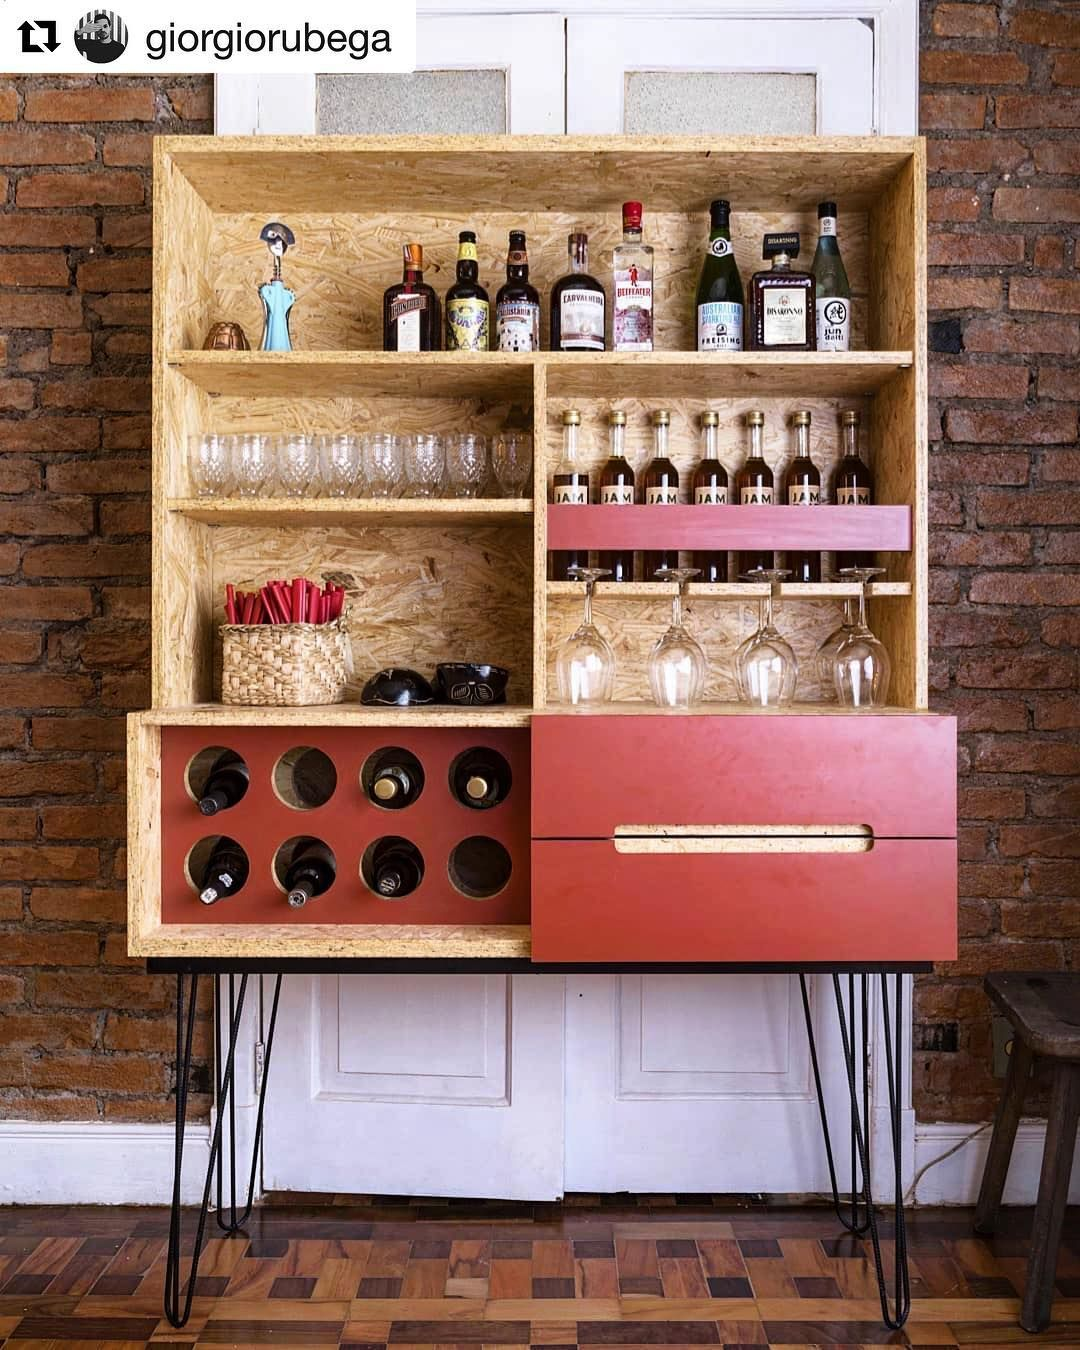 Sterlingosb Zero On Instagram Thought We D Share This Great Osb Bar After All It Is Winewednesday Repost Giorgior Osb Osb Furniture Bar Design